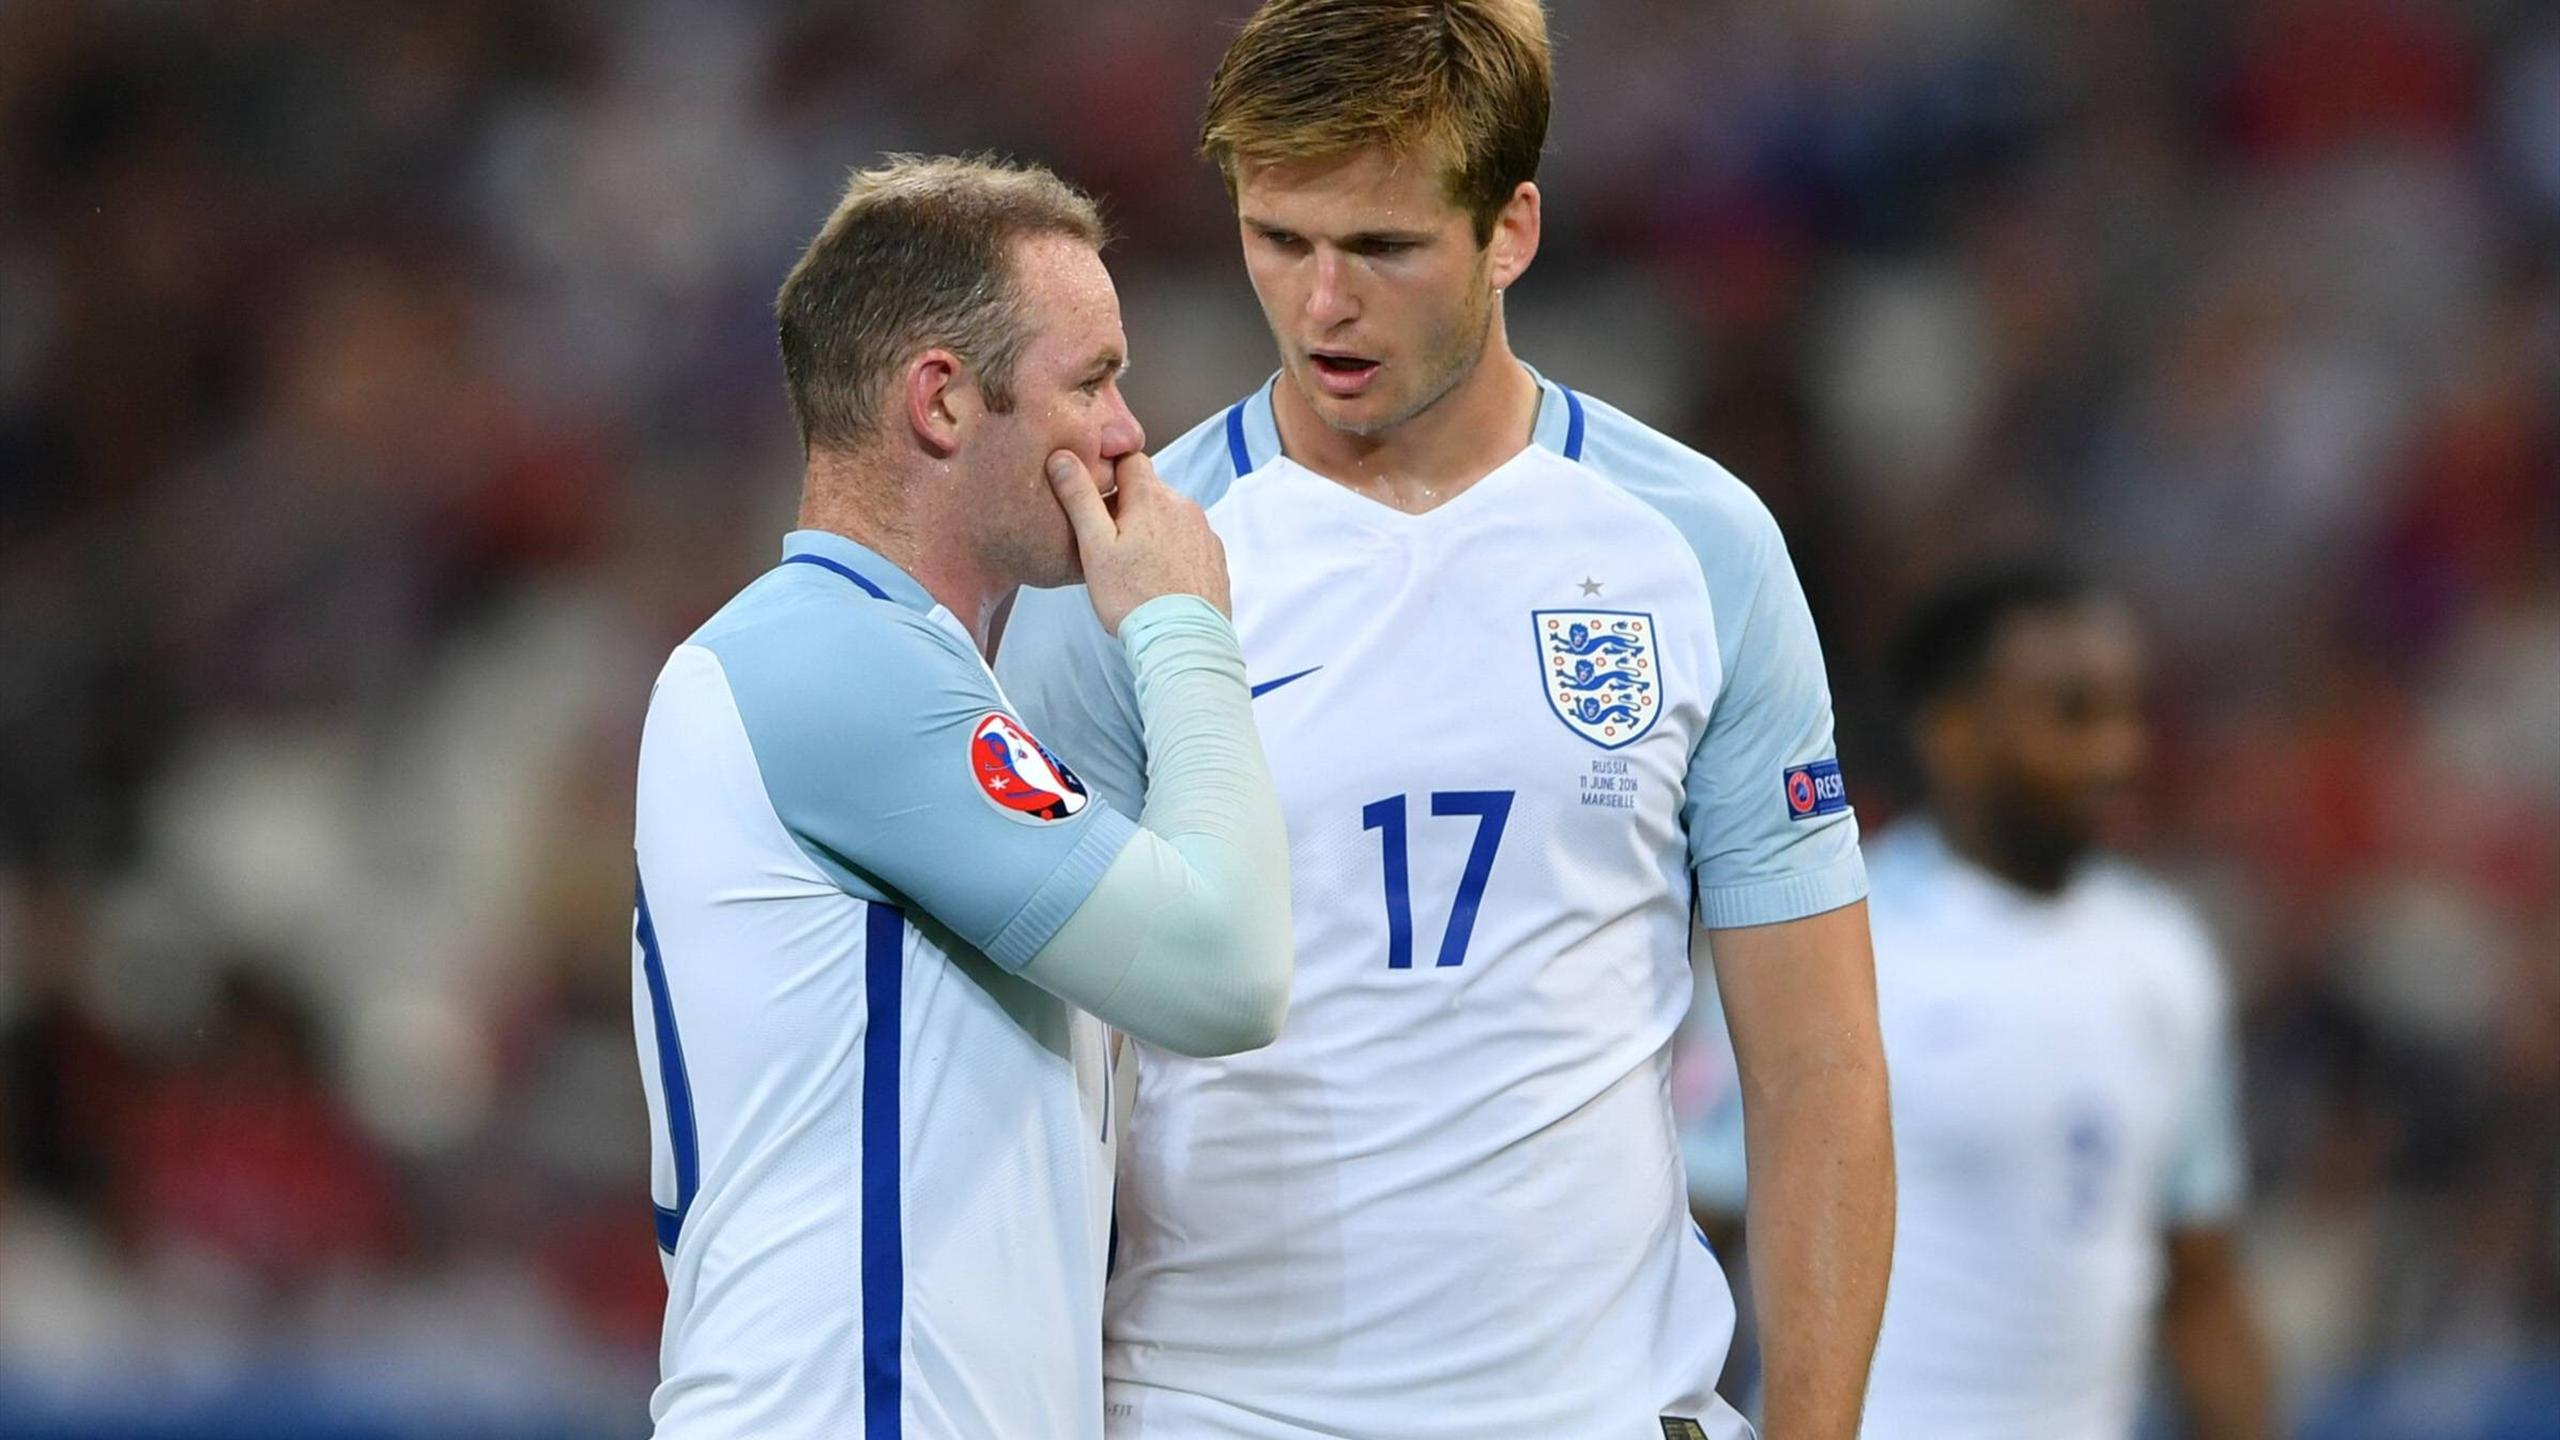 Englands skipper Wayne Rooney and his teammate eric dier in the match against russia